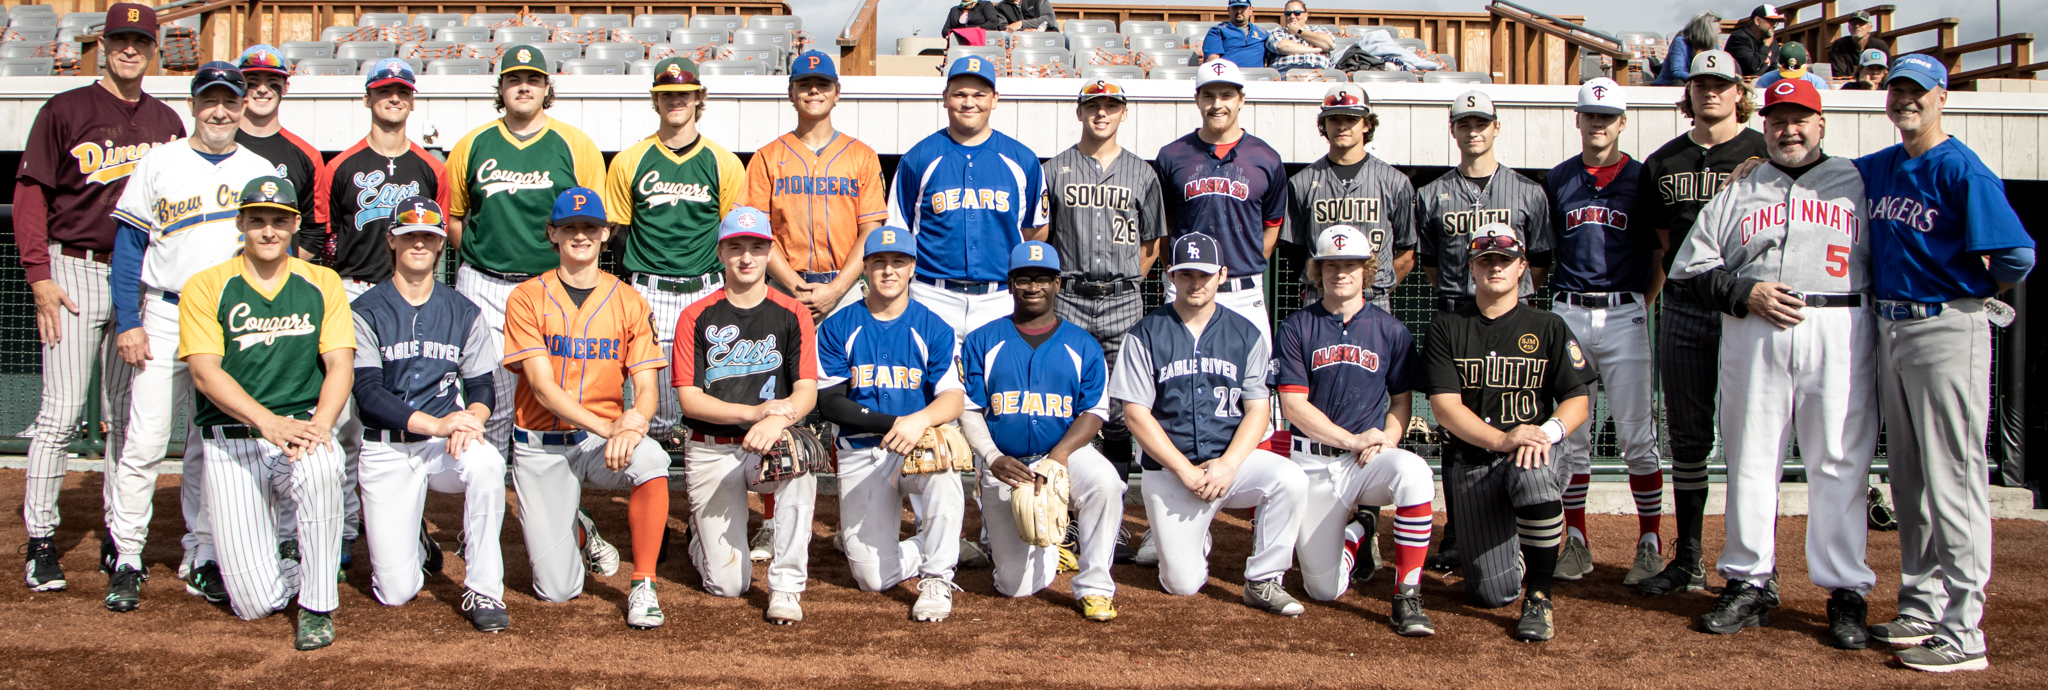 American Division All-Stars.jpg